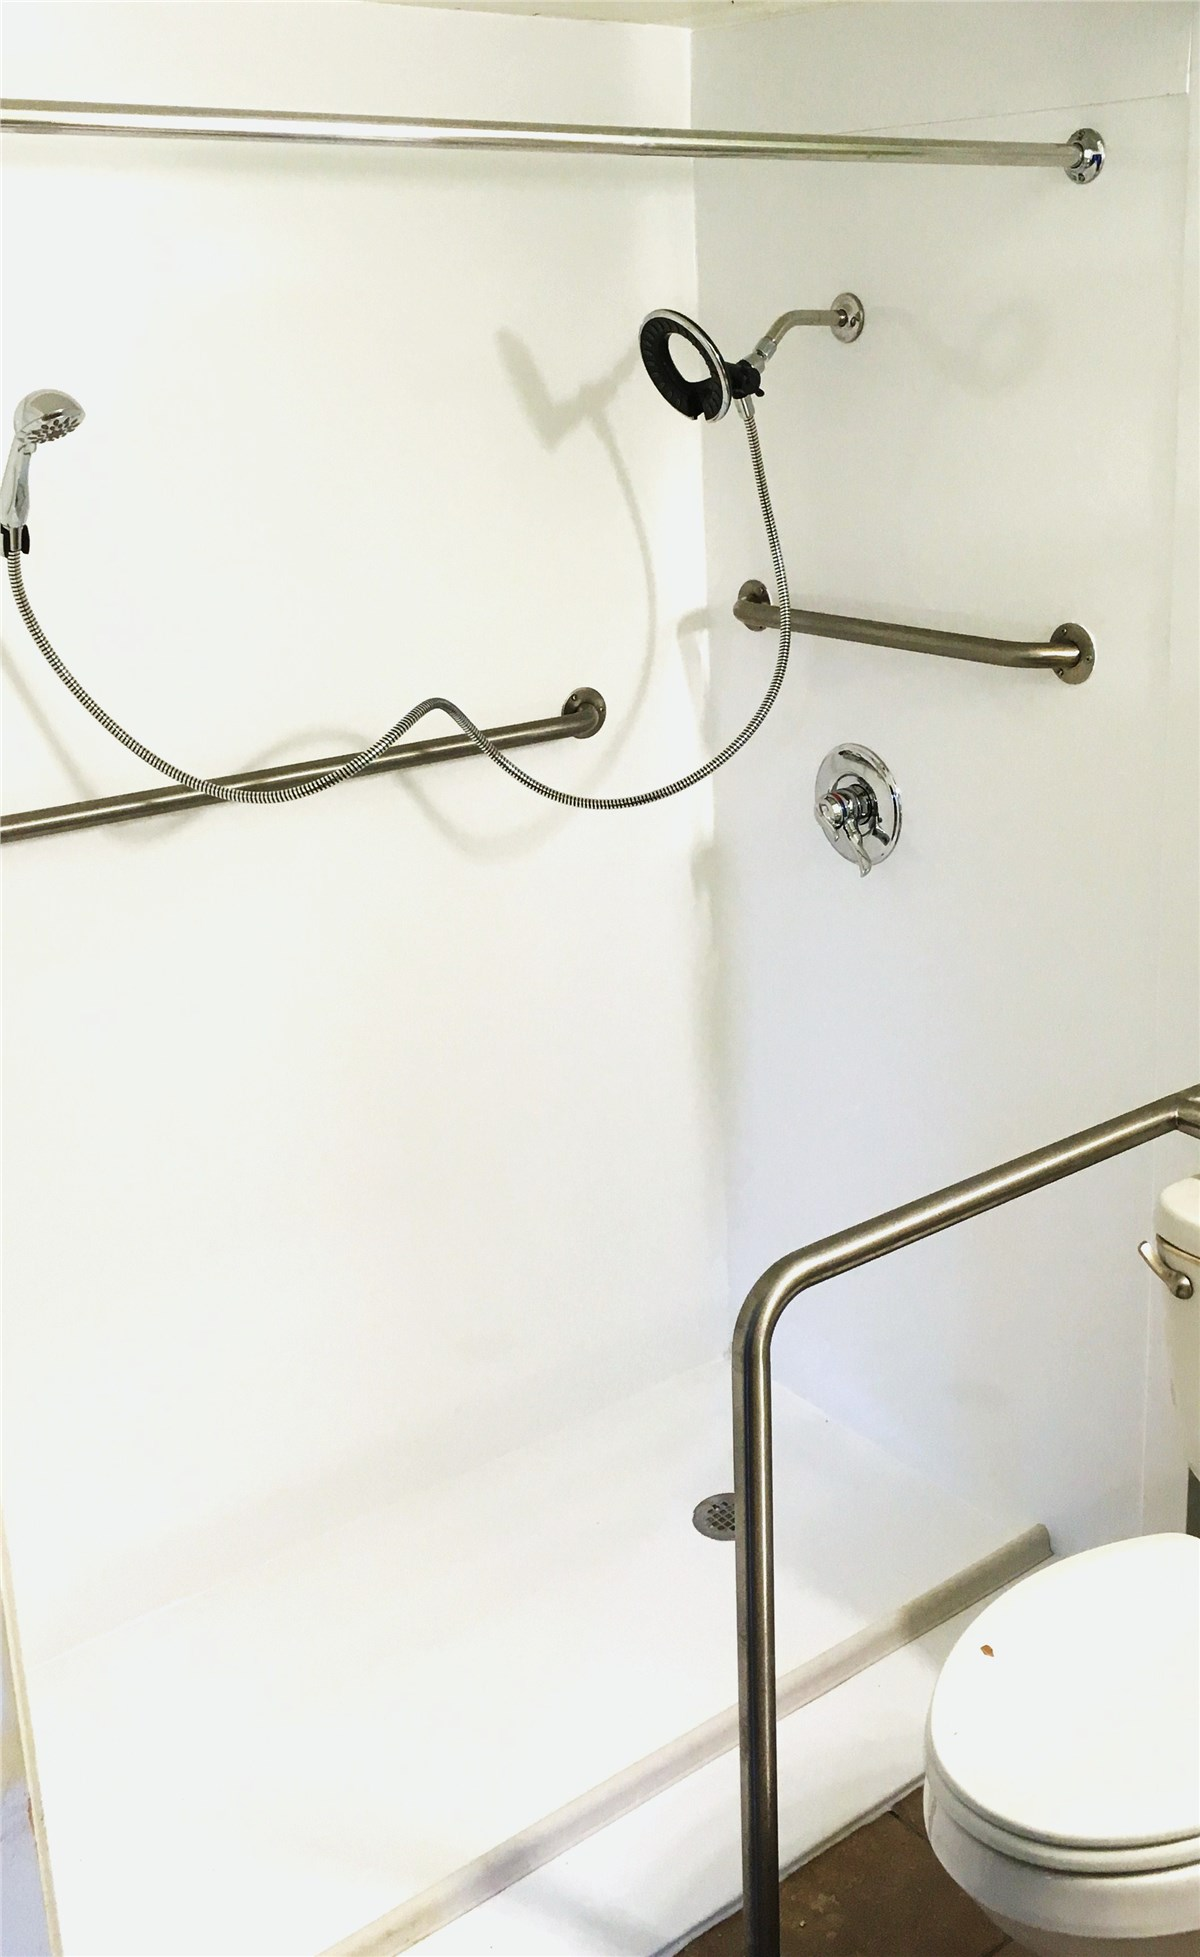 Accessibility Products - Grab Bars Photo 2